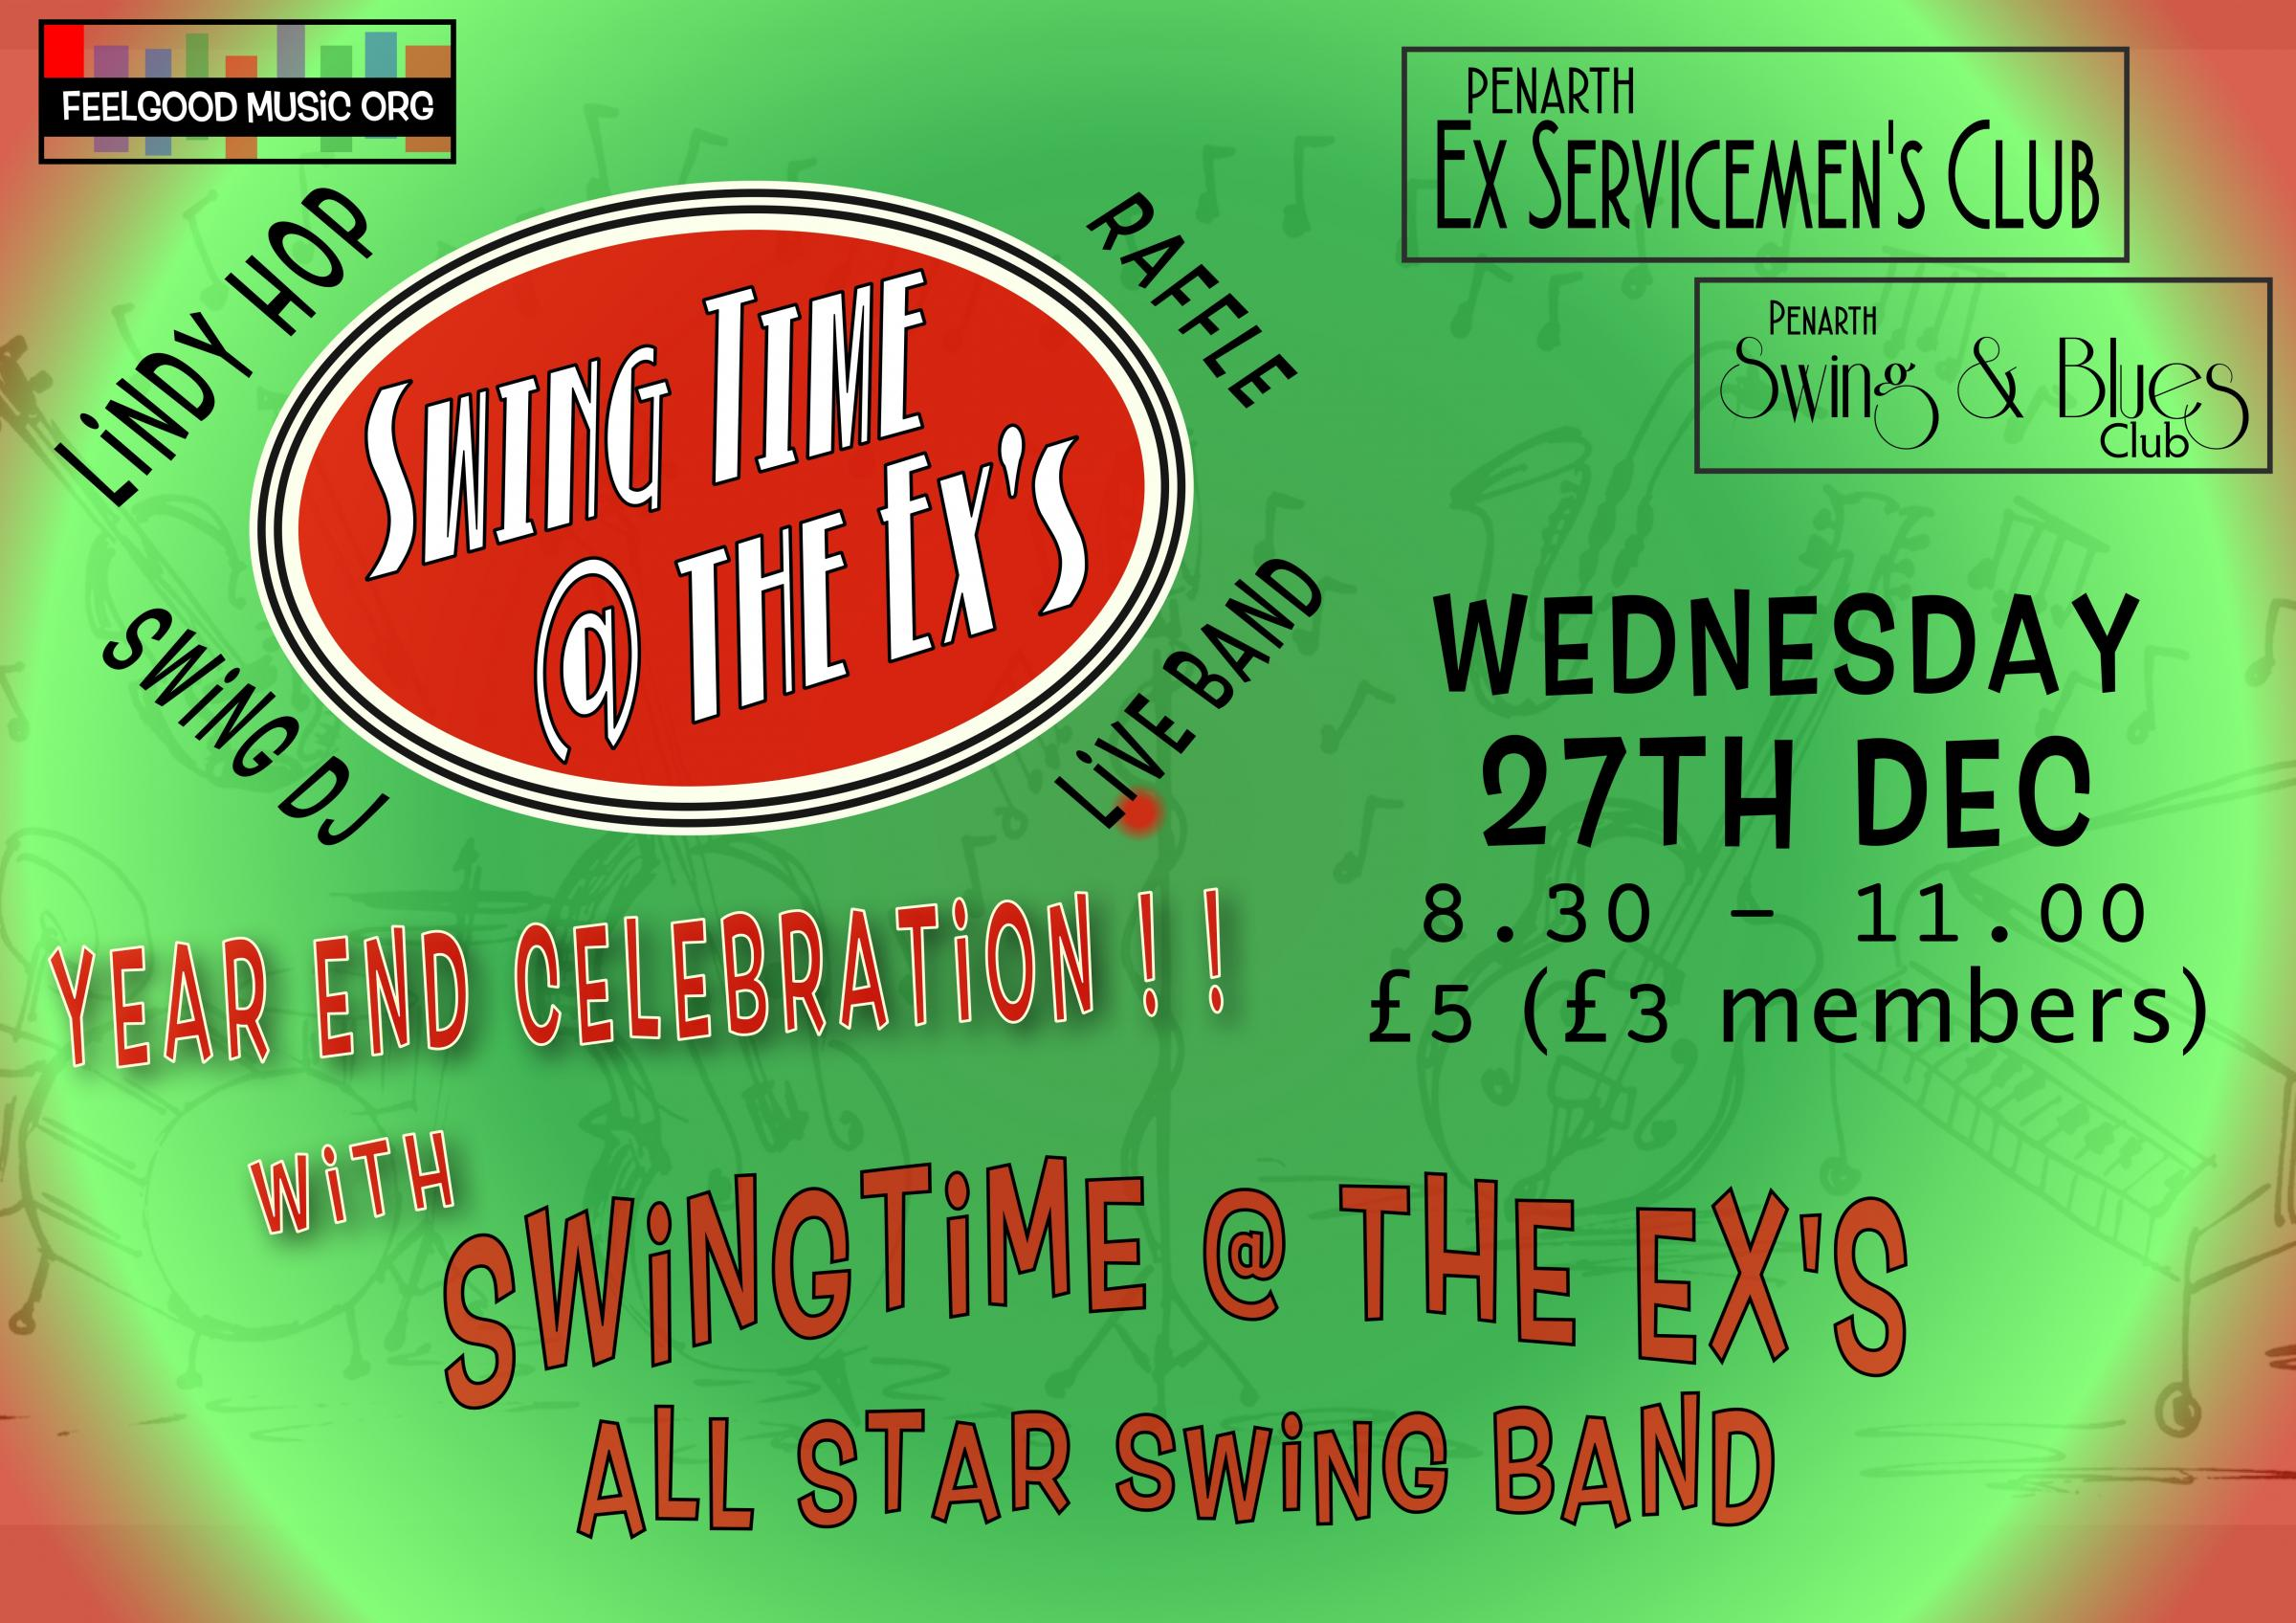 SwingTime @ The Ex's Year End Celebration